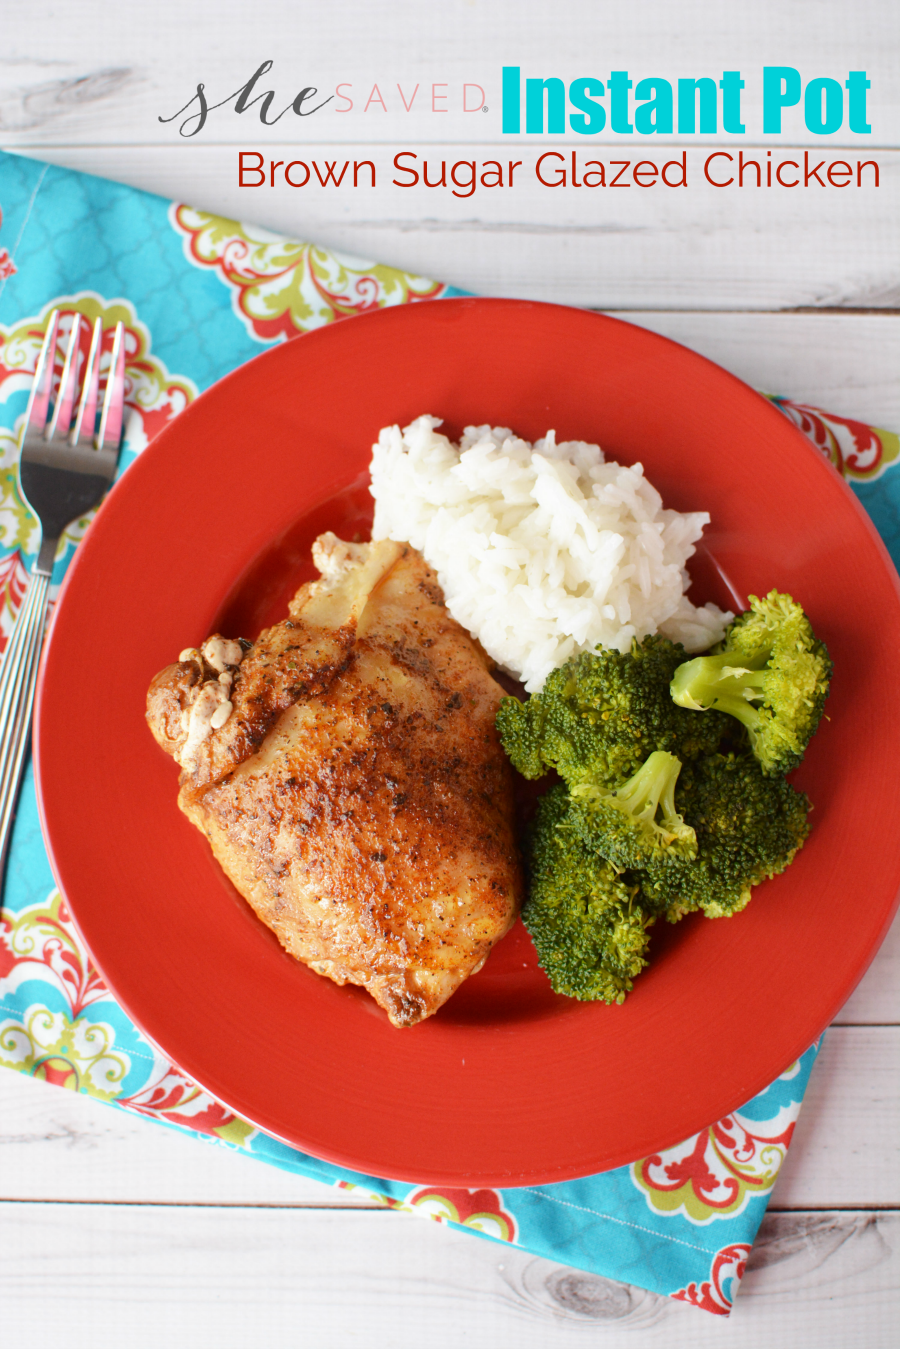 Another Instant Pot recipe to make your life easier! This Instant Pot Chicken Recipe is amazing and will become a family favorite dinner!